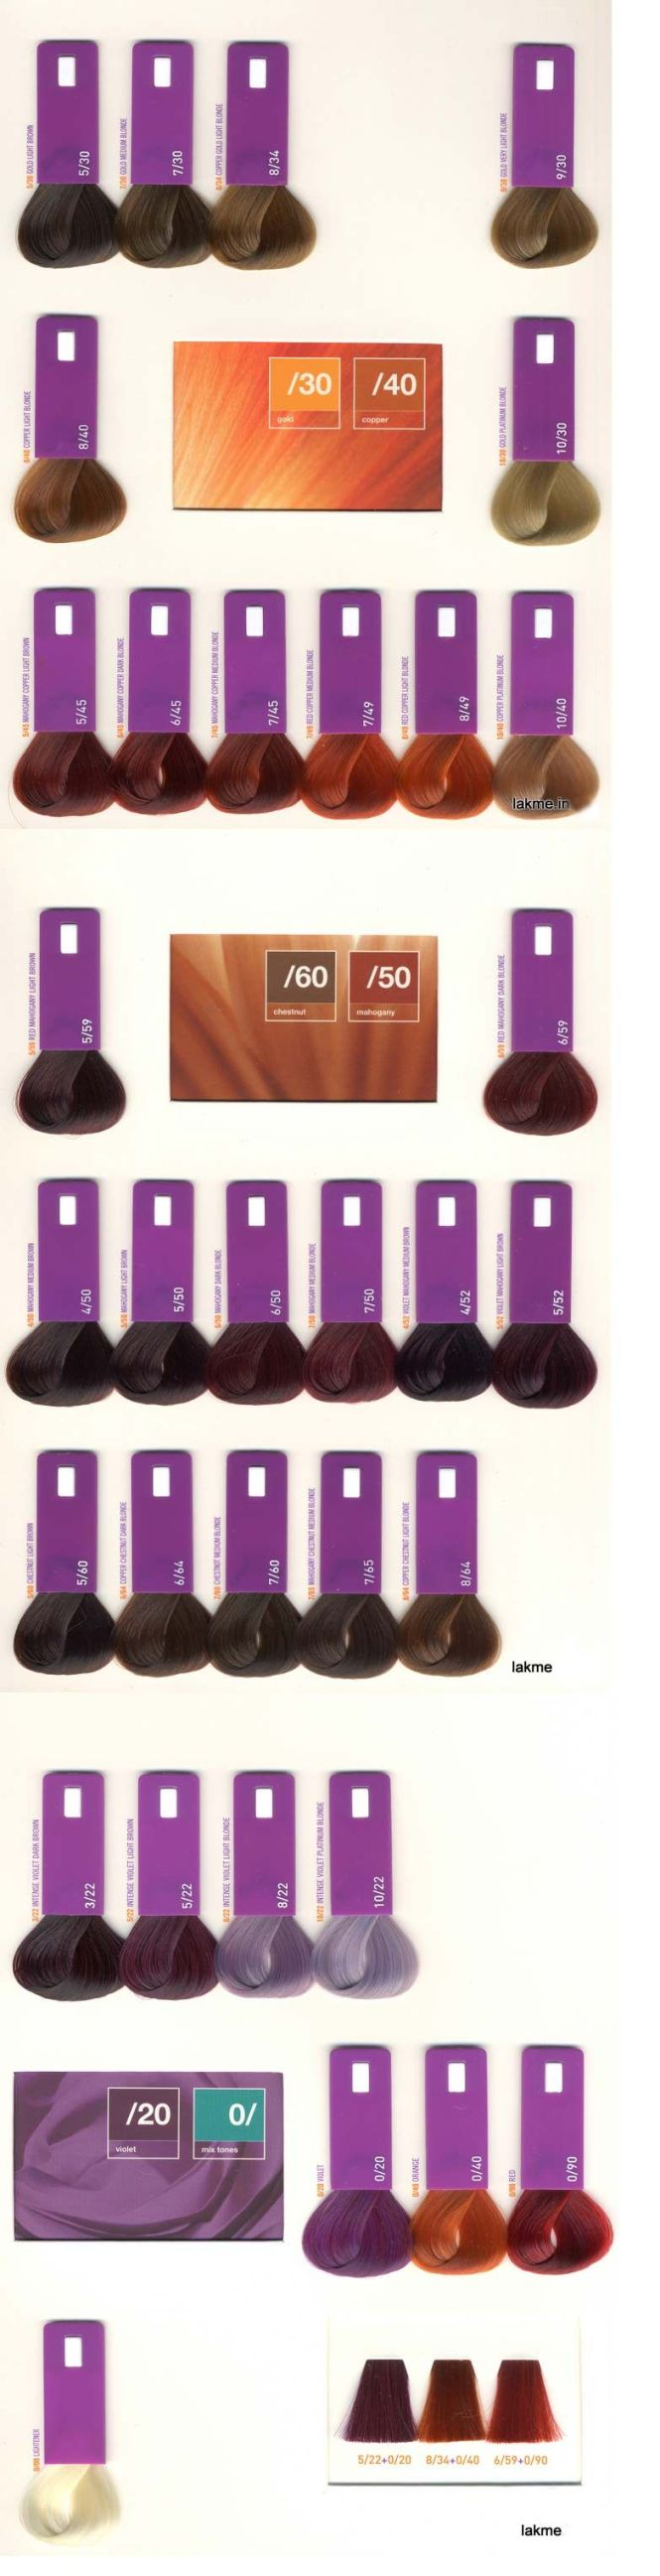 Wella color charm demi chart choice image free any chart examples redken fusion color chart images free any chart examples wella color charm demi chart choice image nvjuhfo Image collections